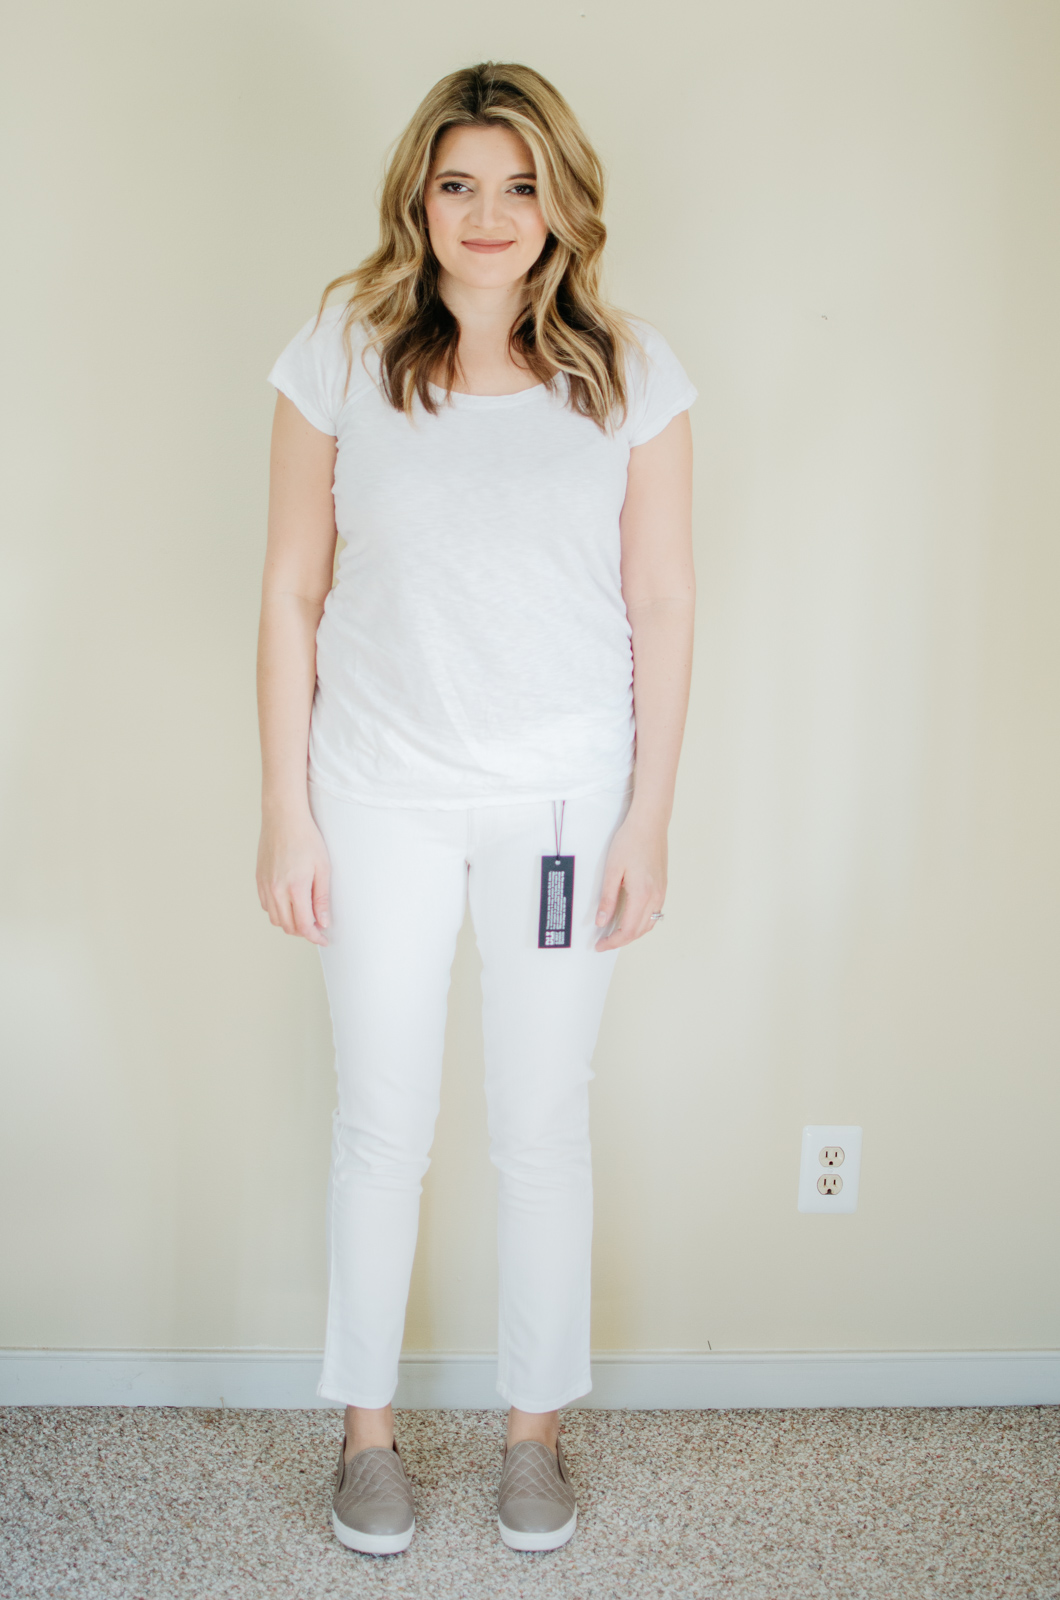 DL1961 maternity jeans review | See reviews of over 15 maternity jeans brands by clicking through to this post! | bylaurenm.com